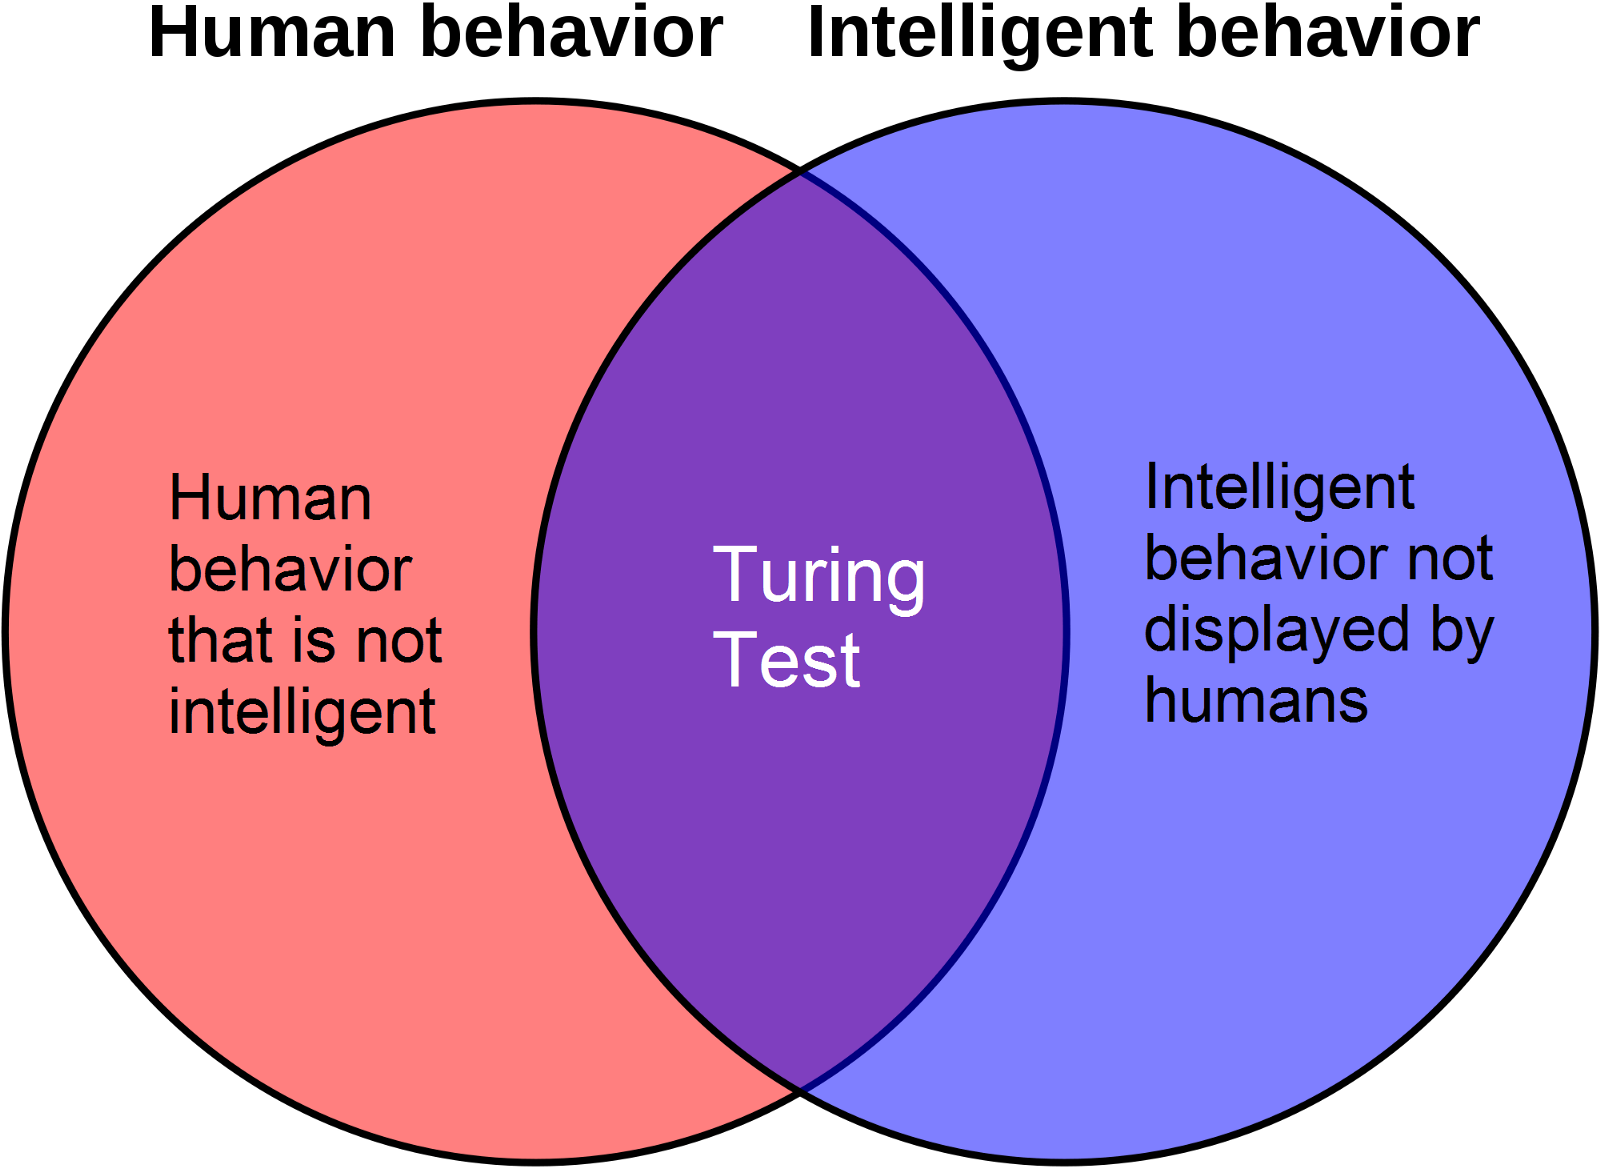 an analysis of the intelligence of computers Business intelligence to retrieve information in a timely manner and to perform analysis of the data business intelligence of computers learn about each of.